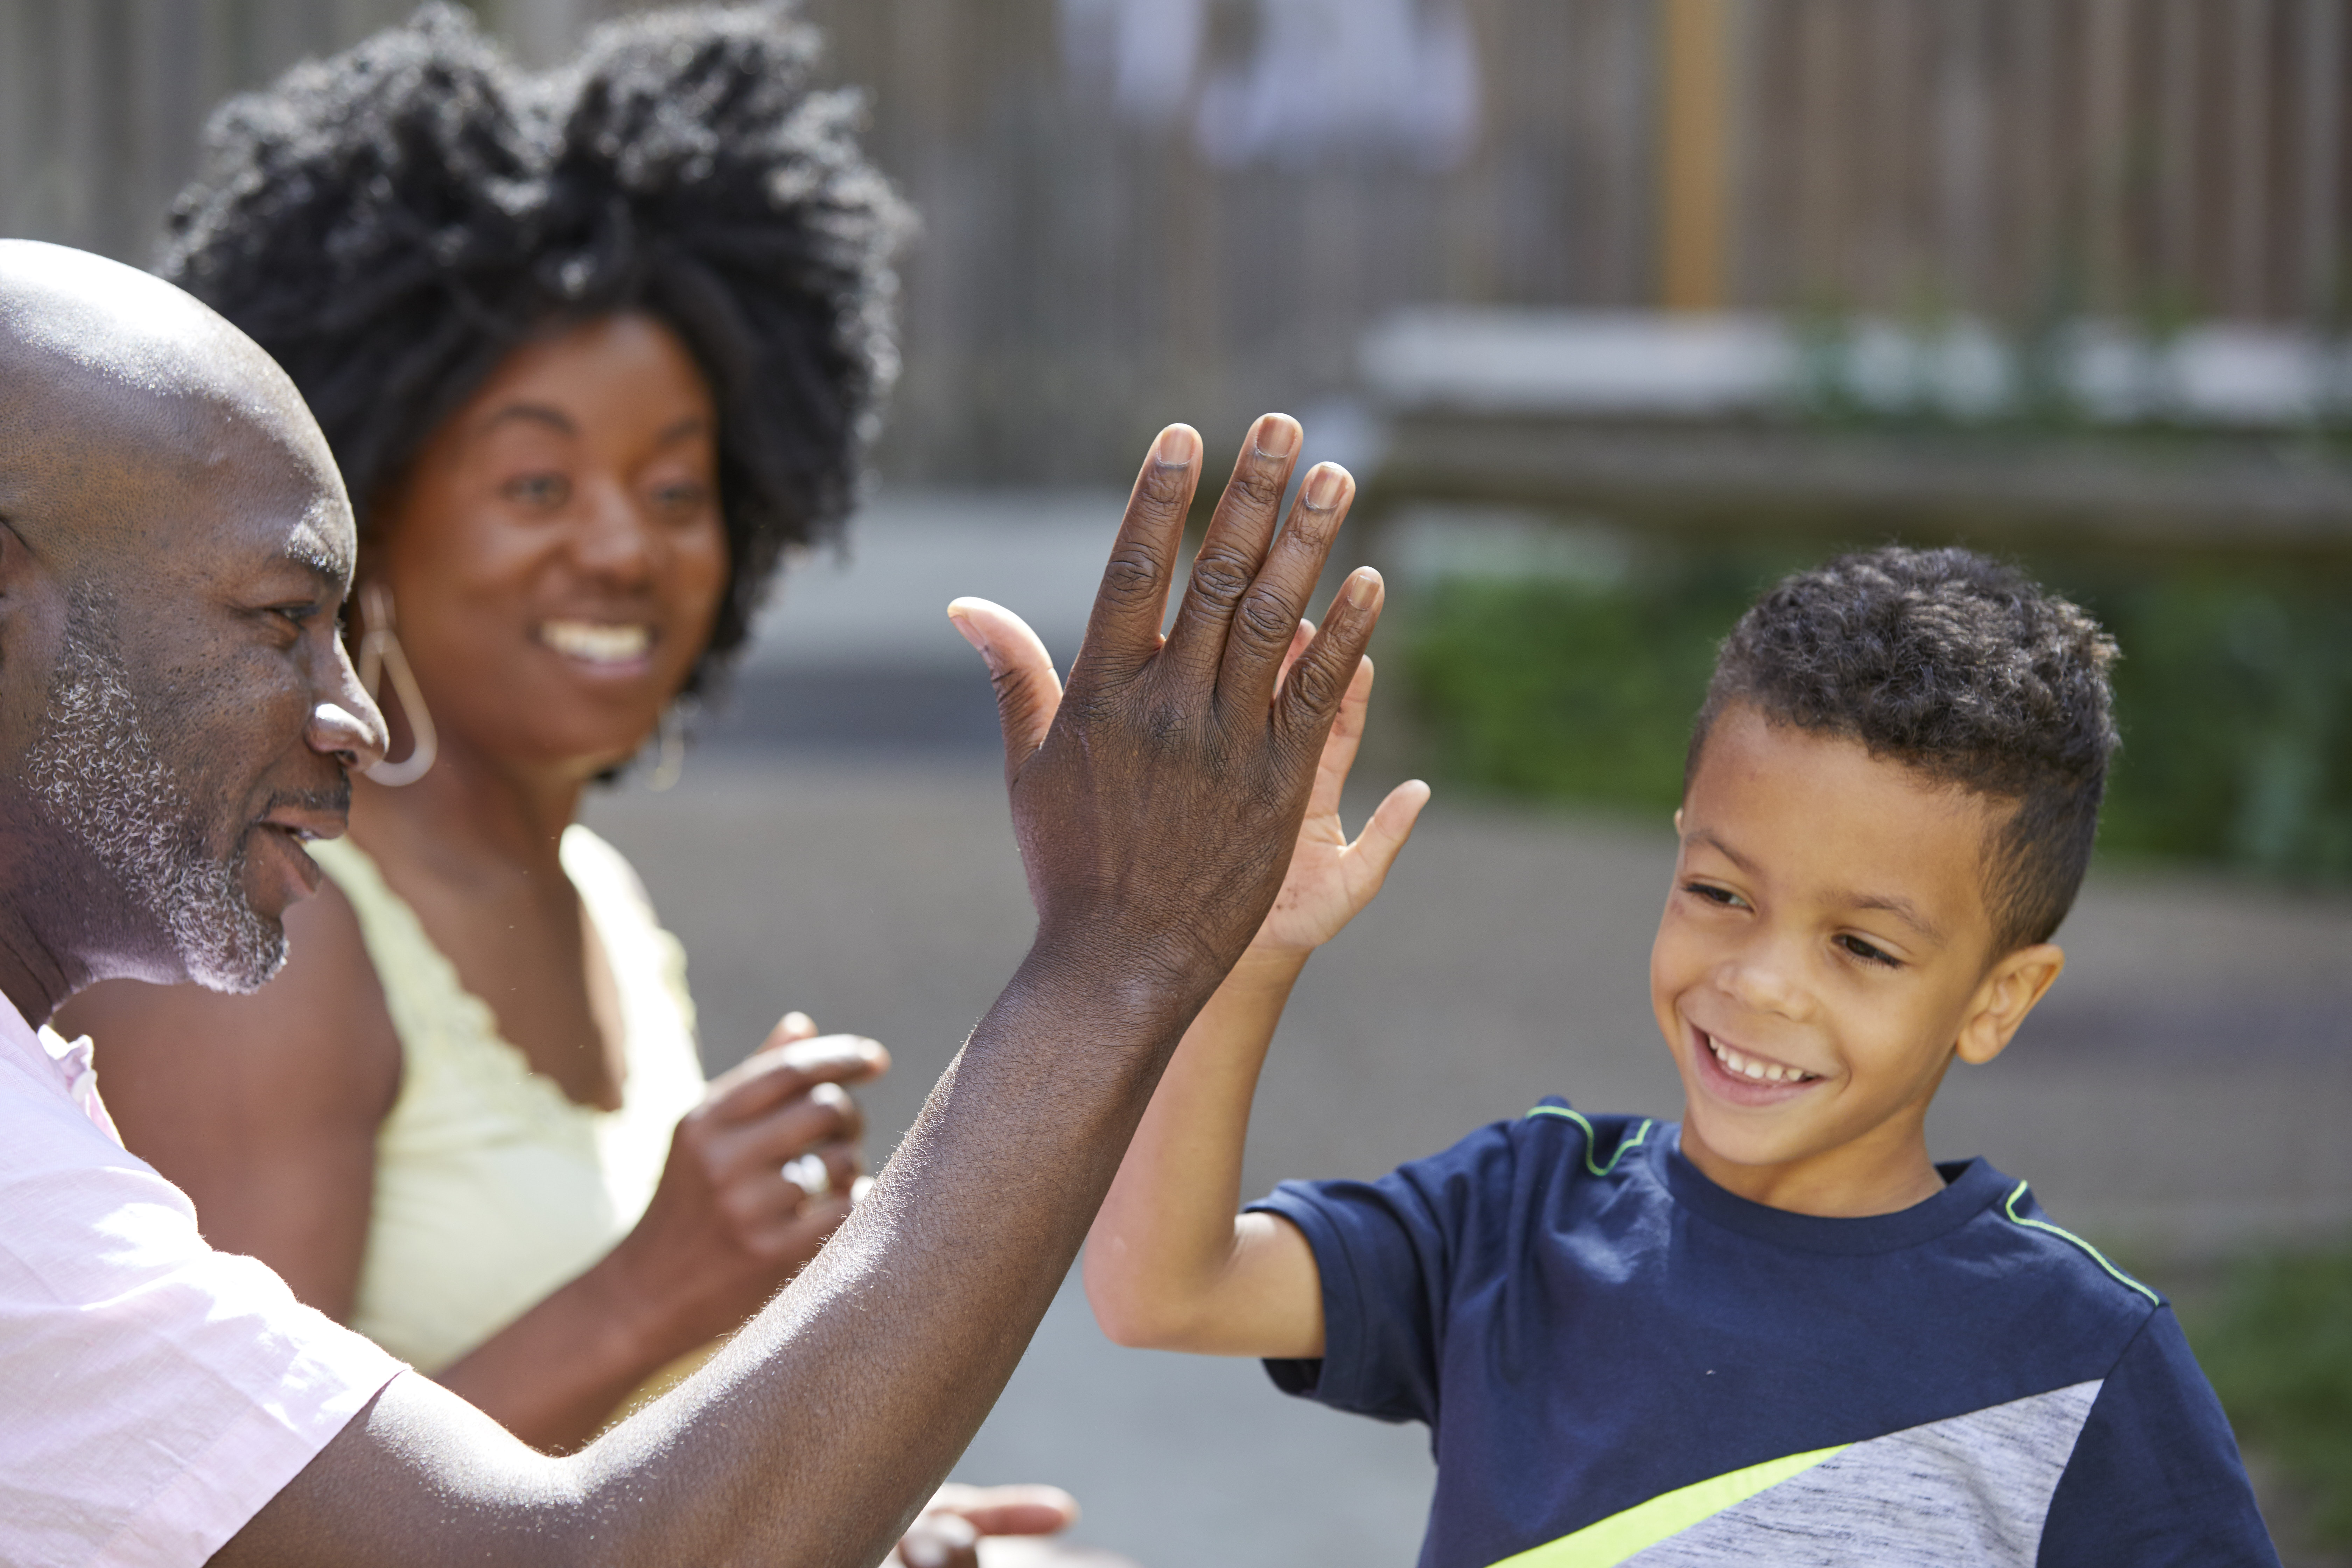 Child high five with adult